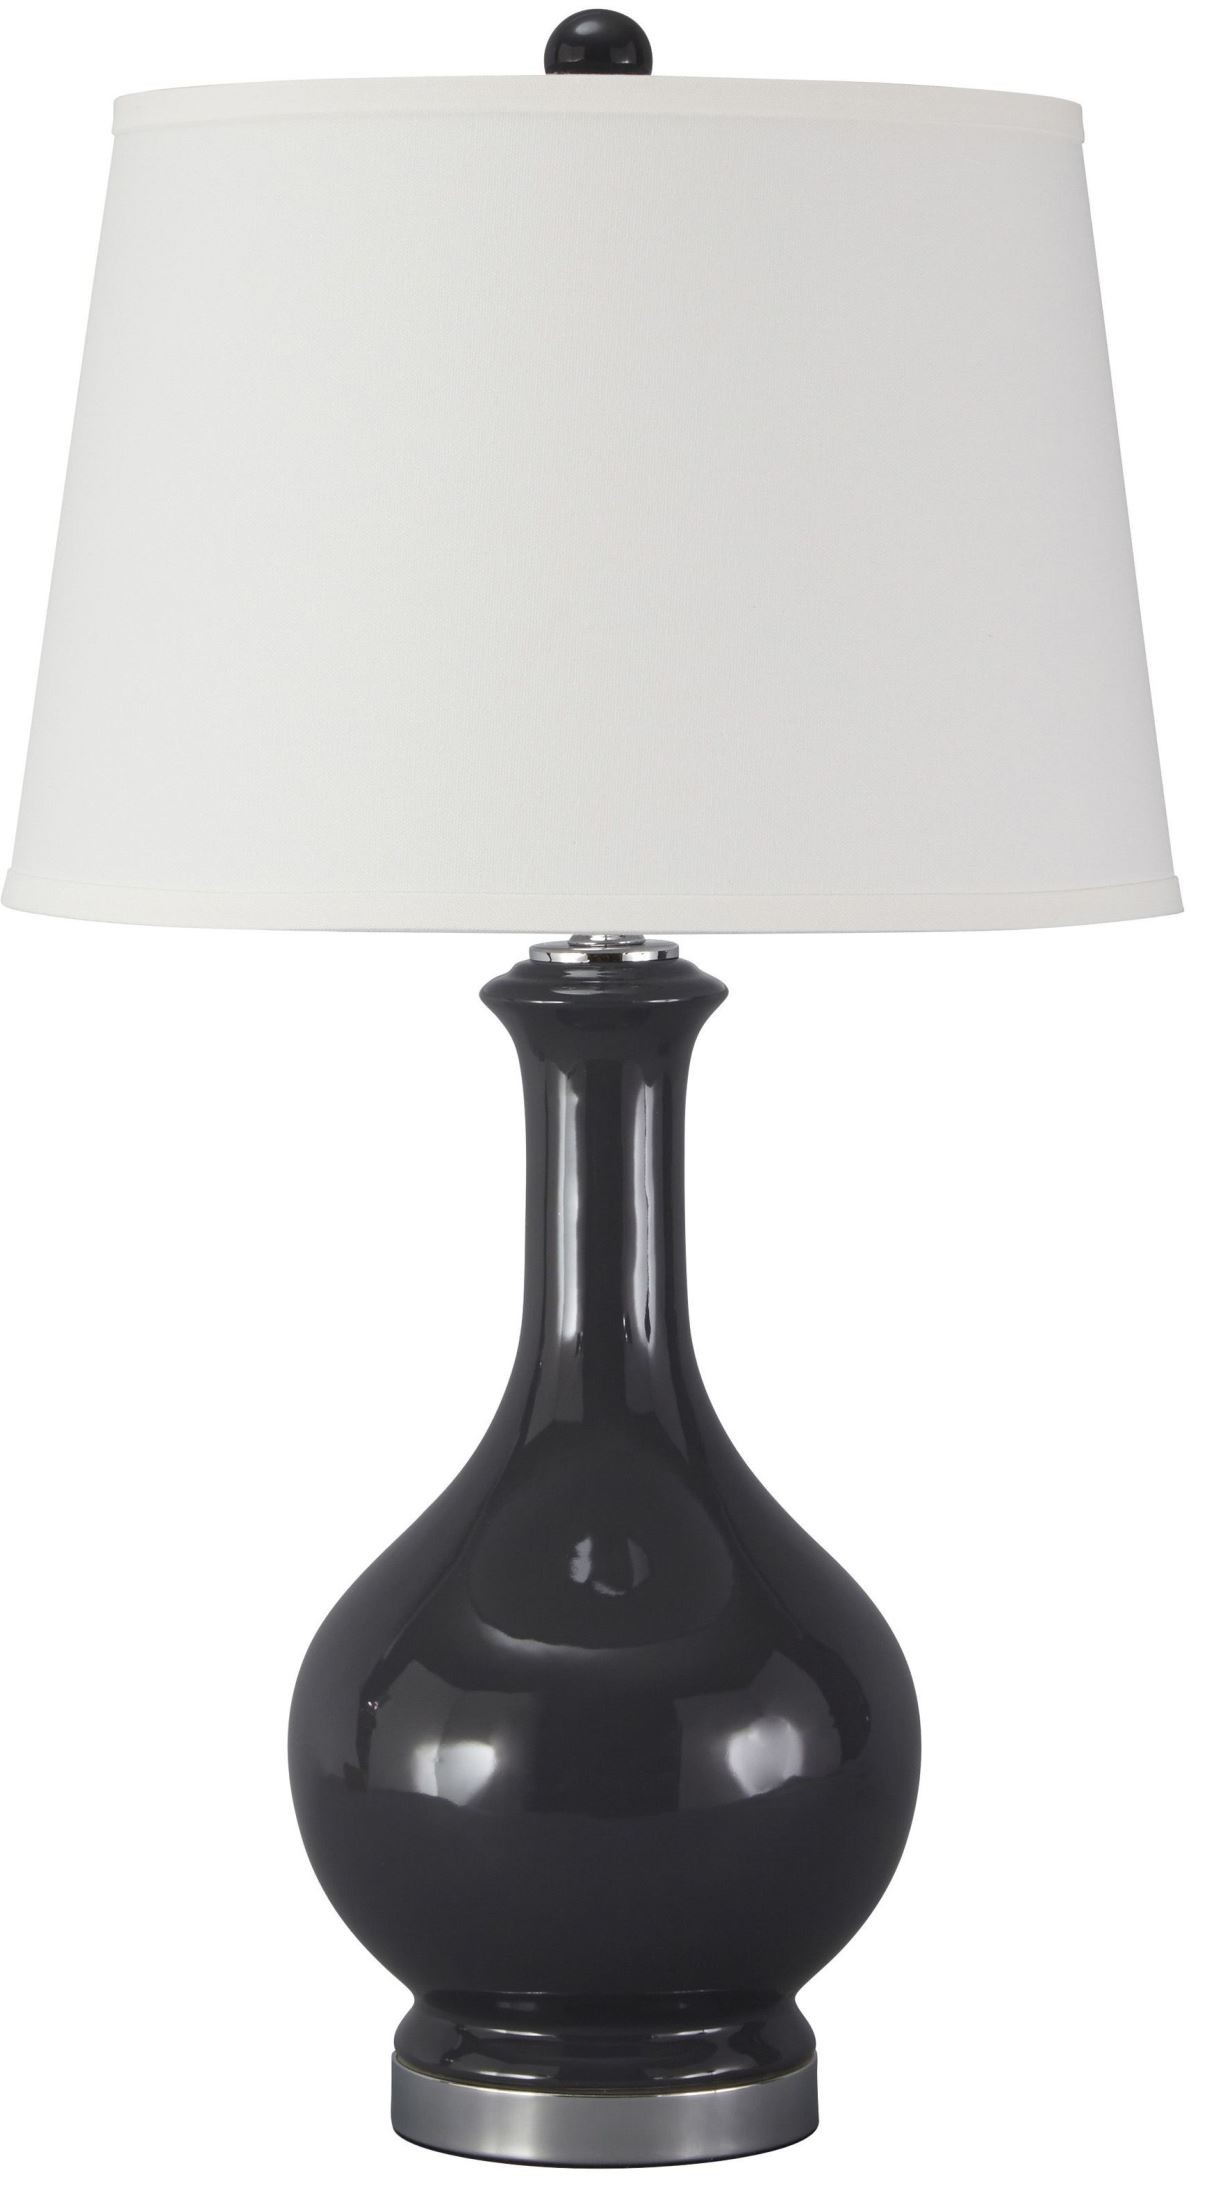 shavonnia blue ceramic table lamp from ashley l100434 coleman. Black Bedroom Furniture Sets. Home Design Ideas